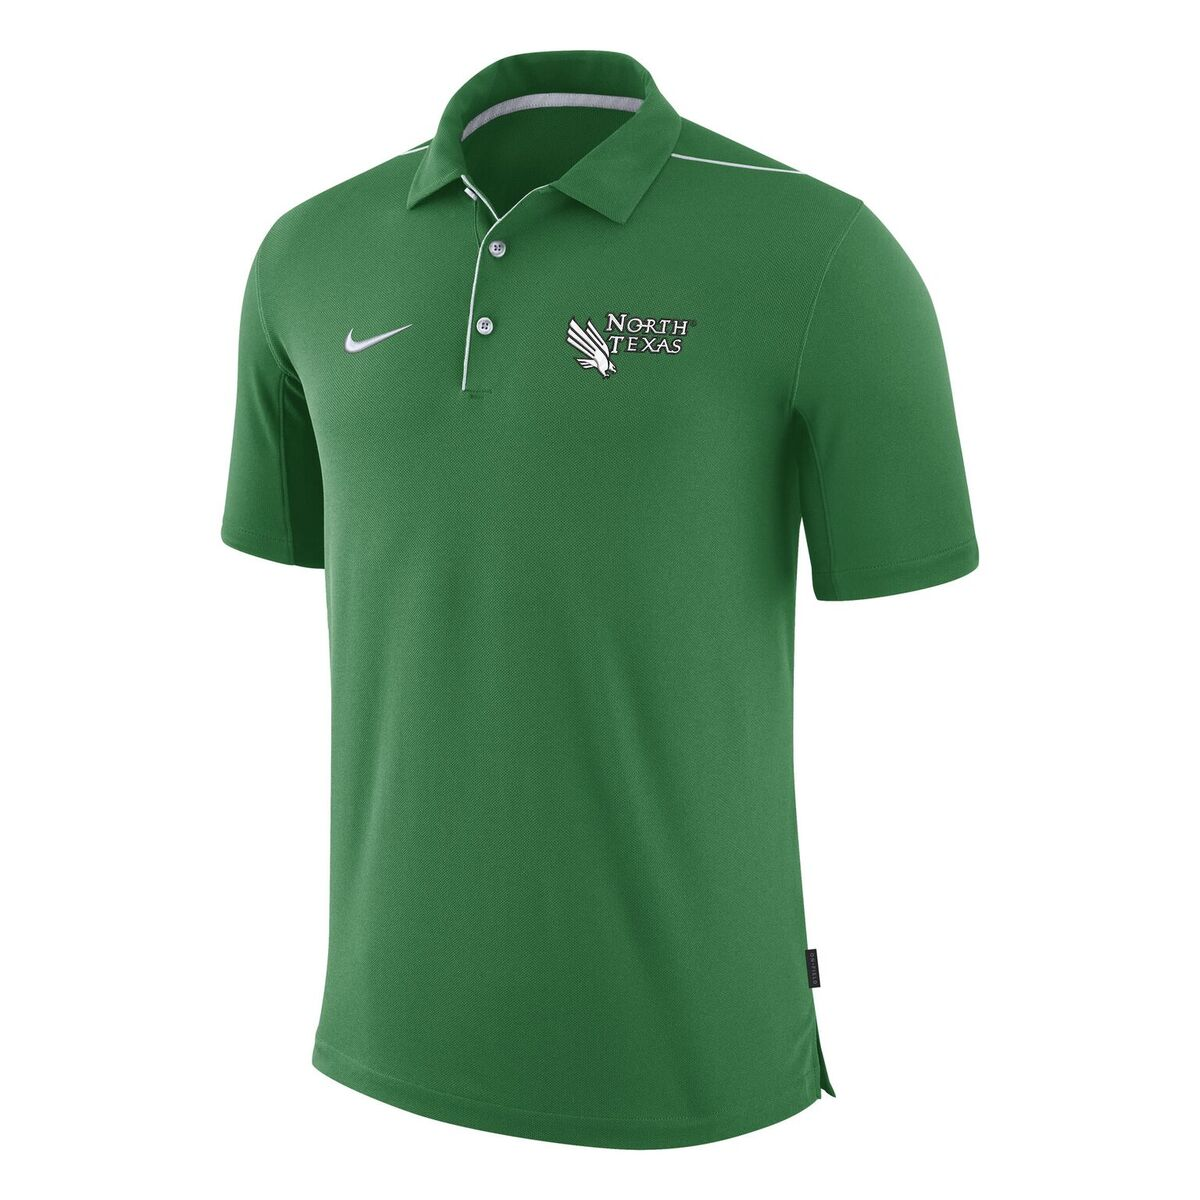 2019 SIDELINE TEAM ISSUE POLO